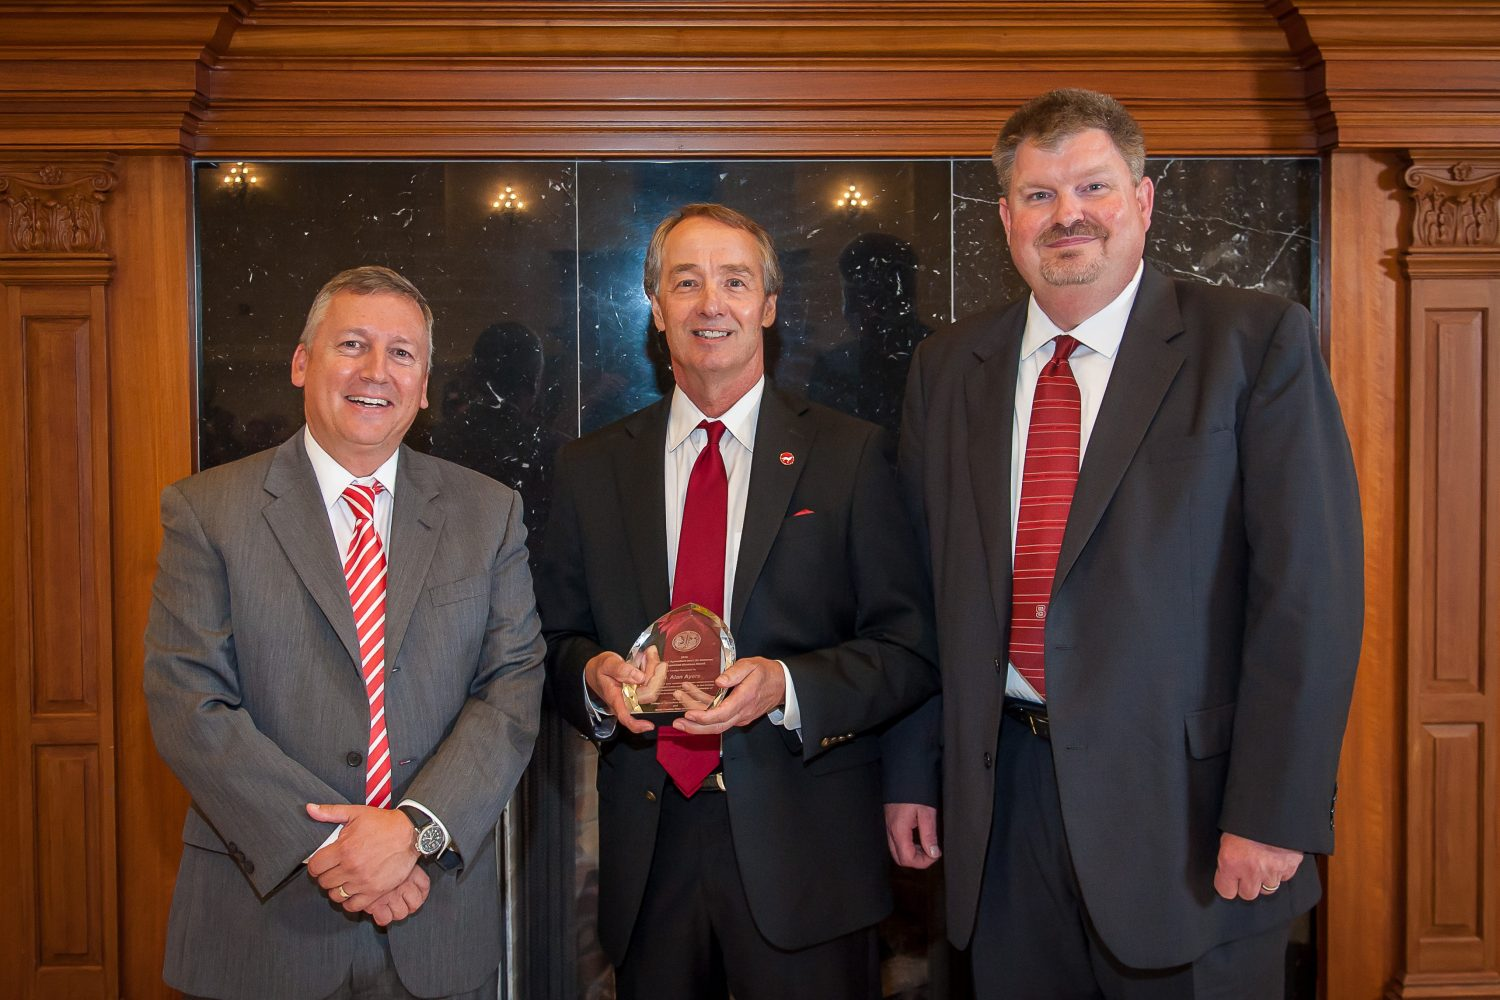 Three men standing in suits while the one in the middle is holding an award.